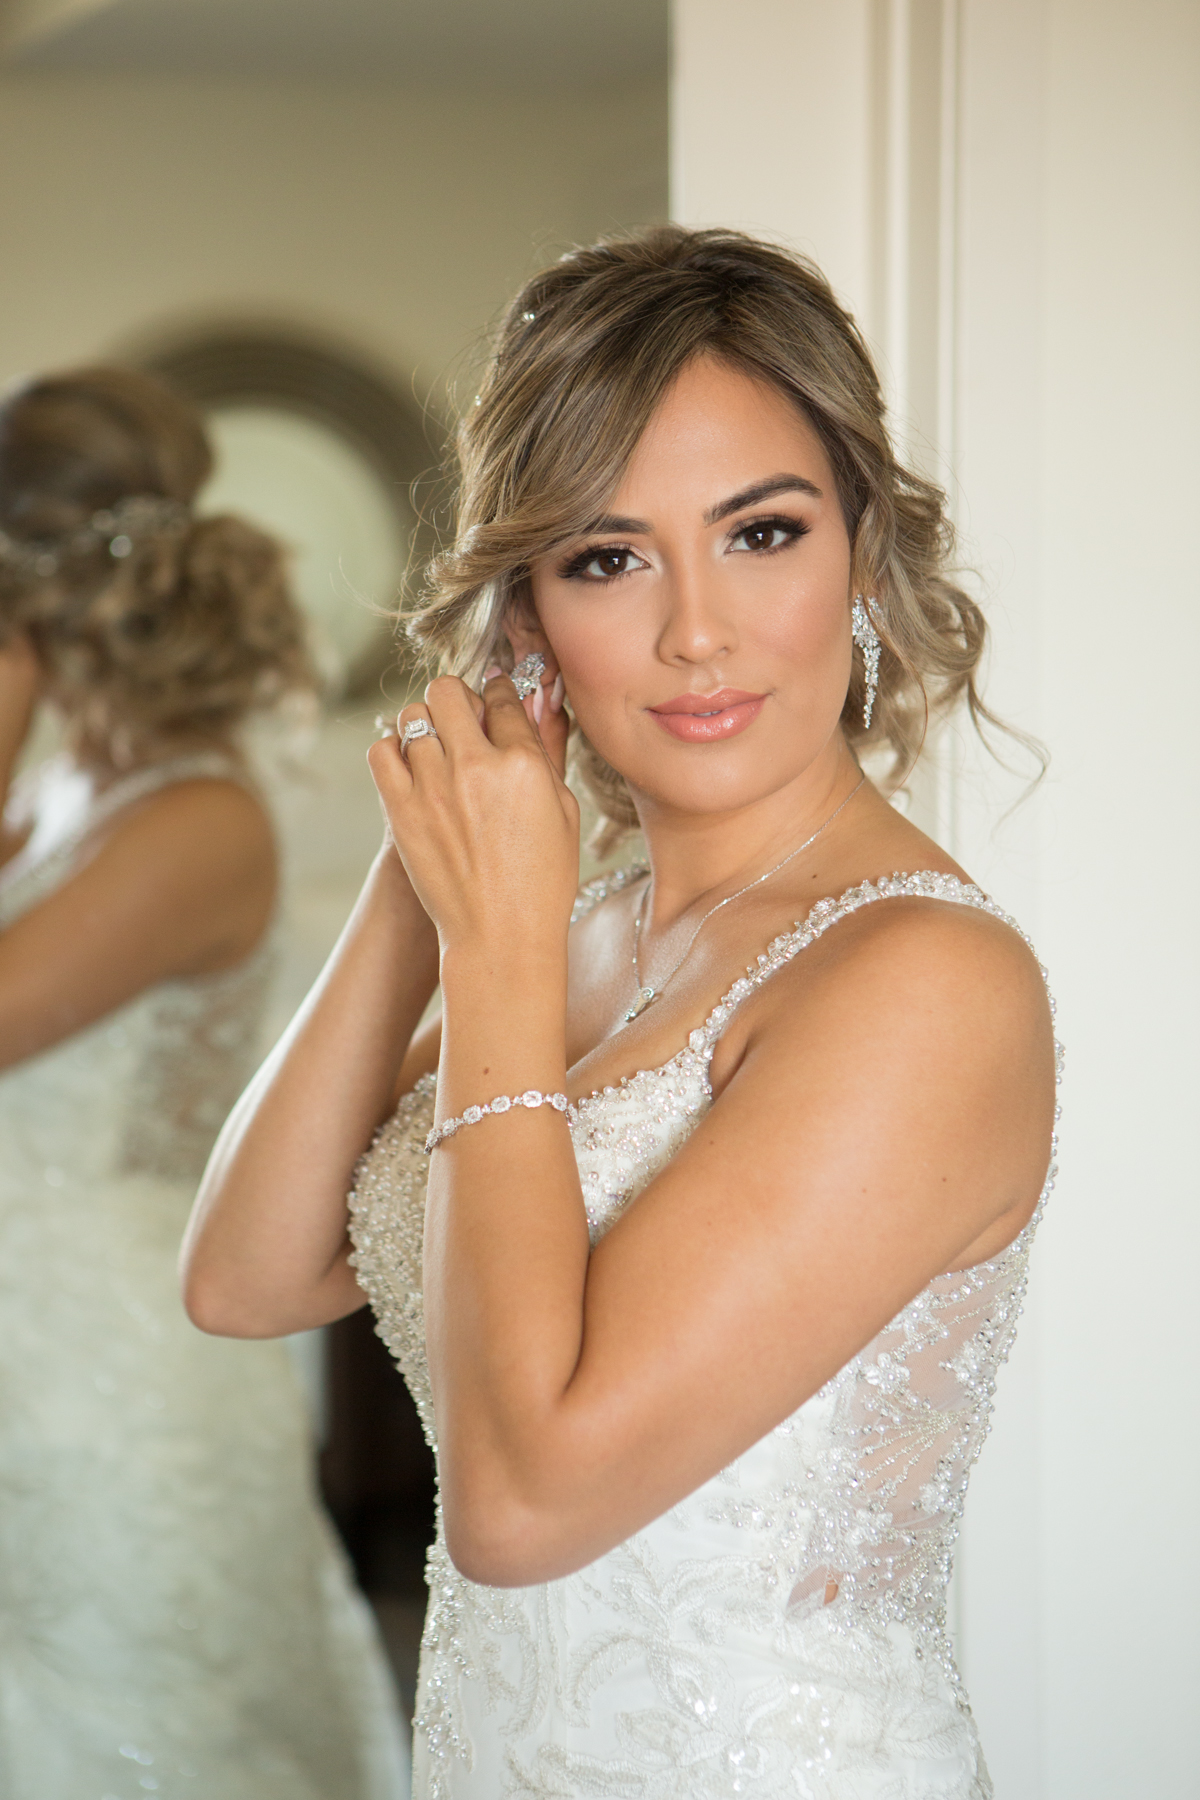 Los Angeles Bridal Makeup Artist 051.jpg